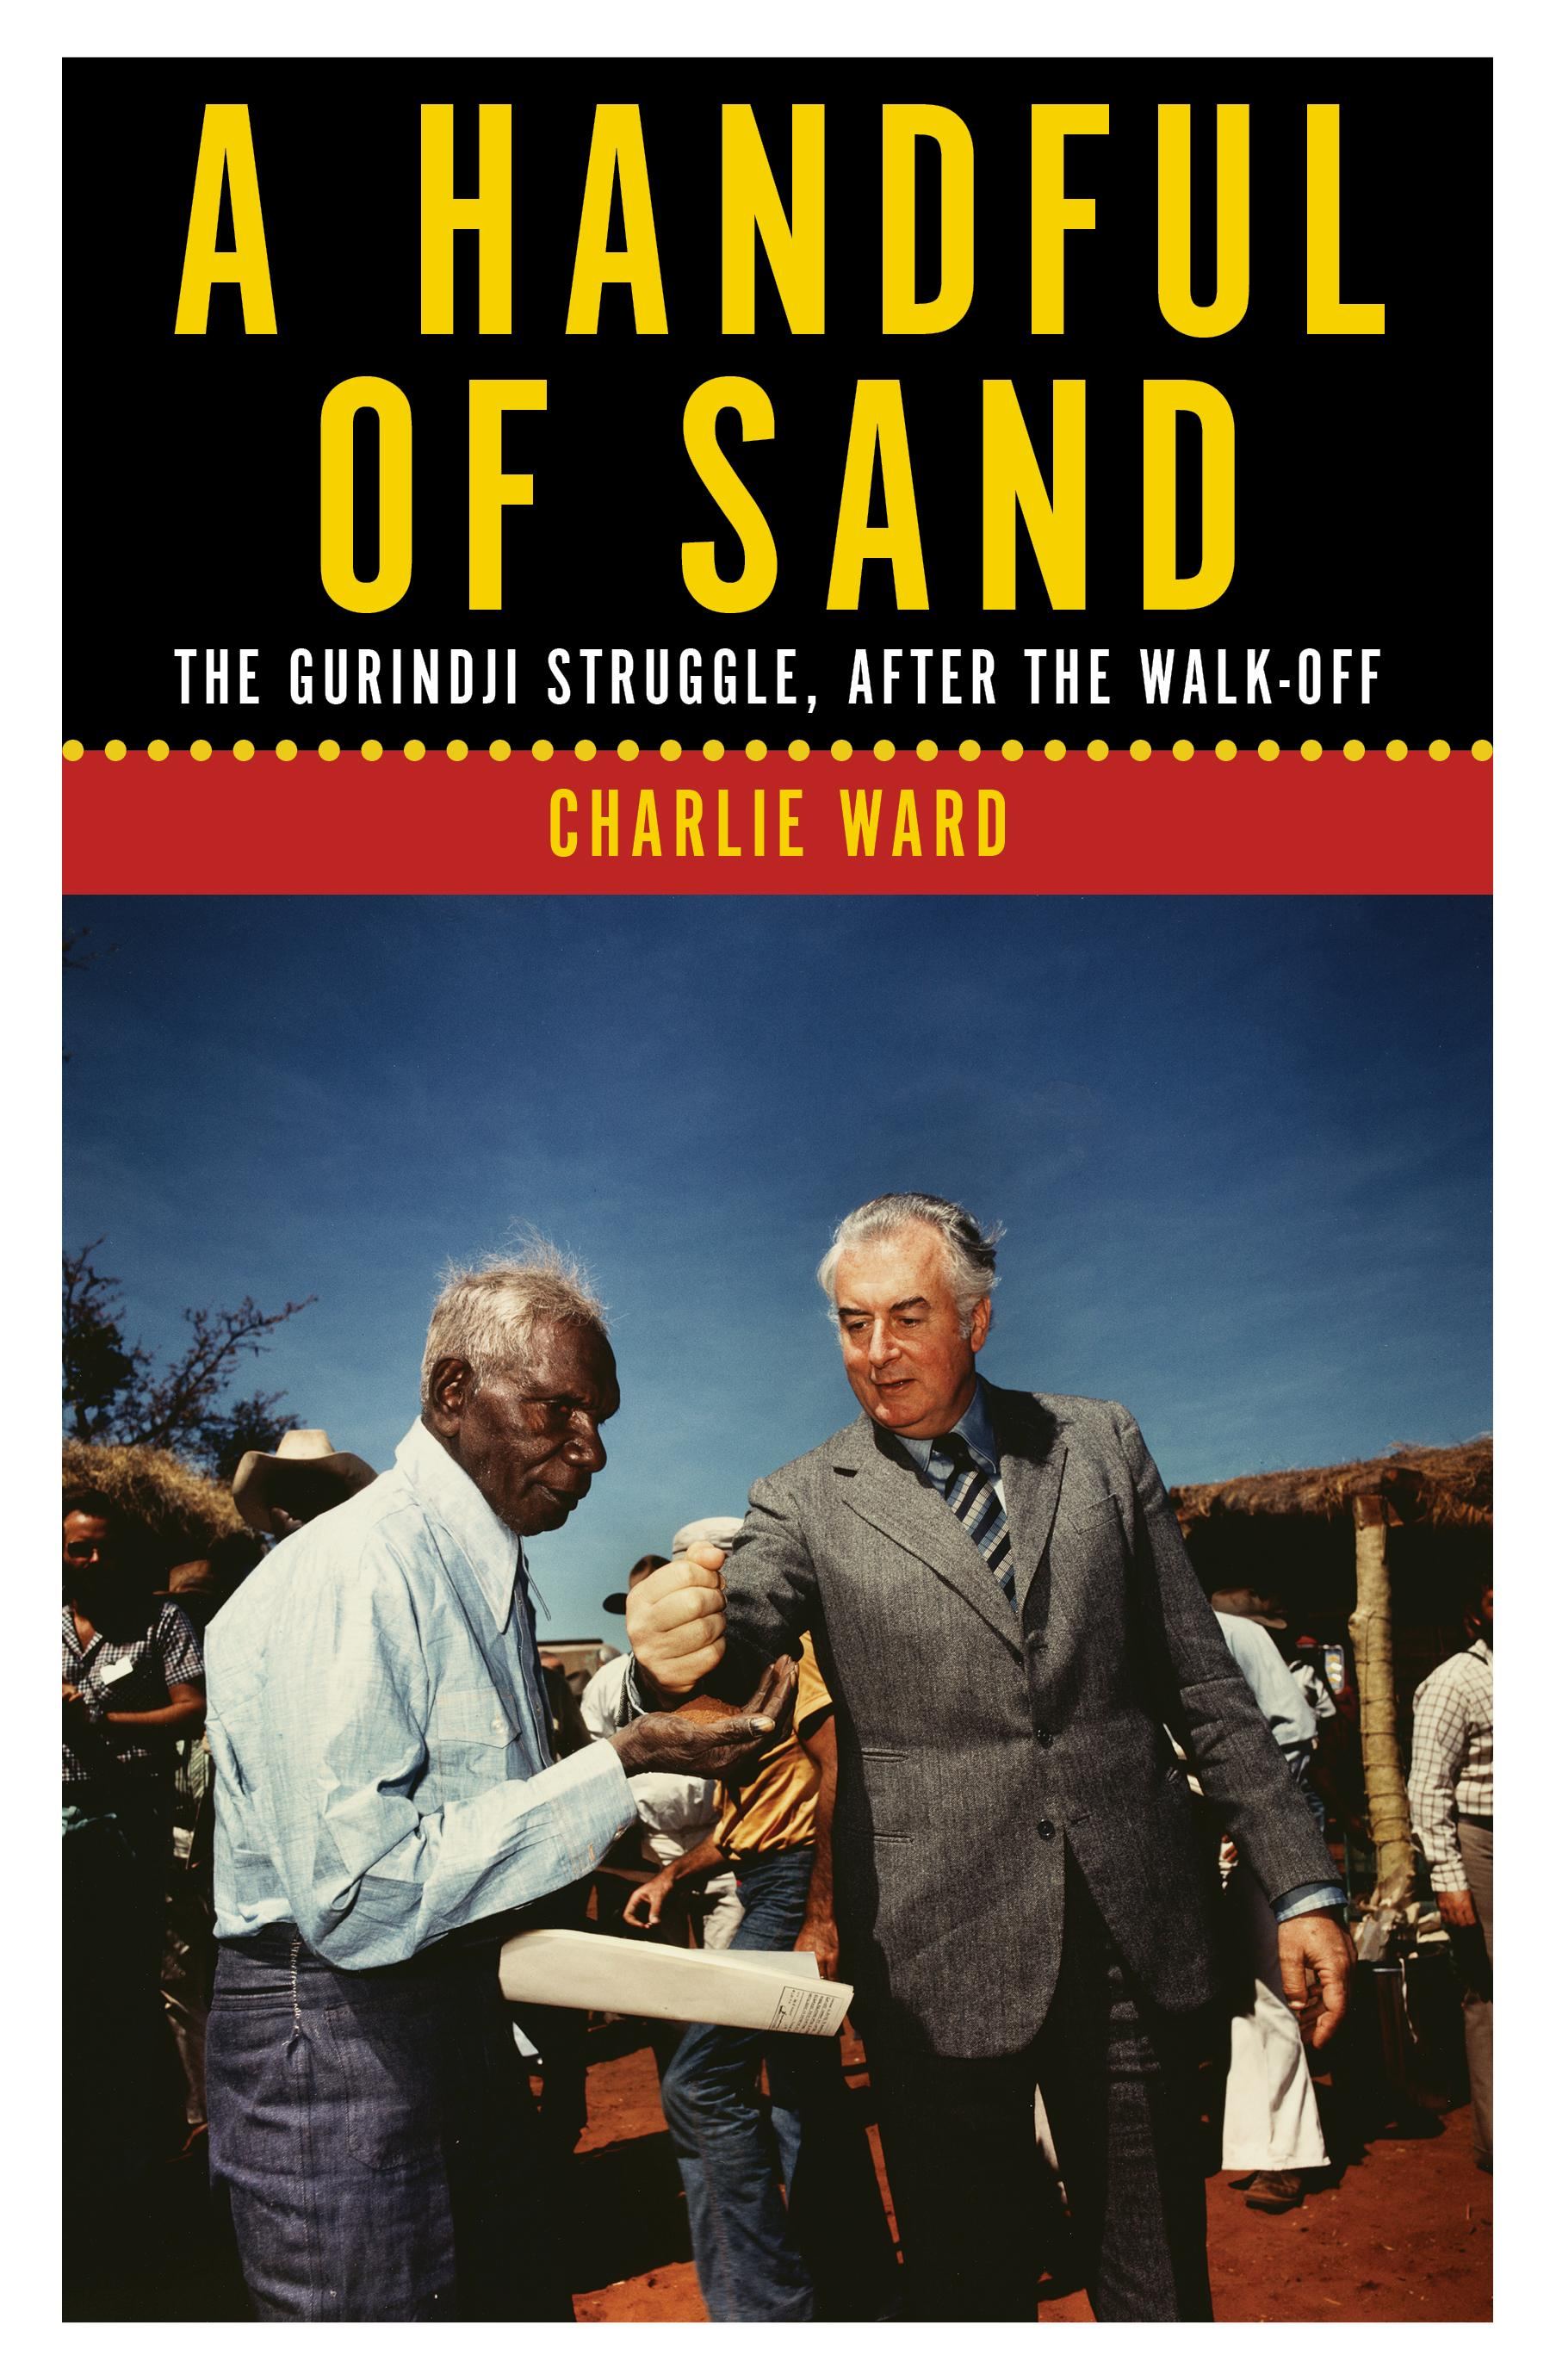 A Handful of Sand: The Gurindji Struggle, After the Walk-Off